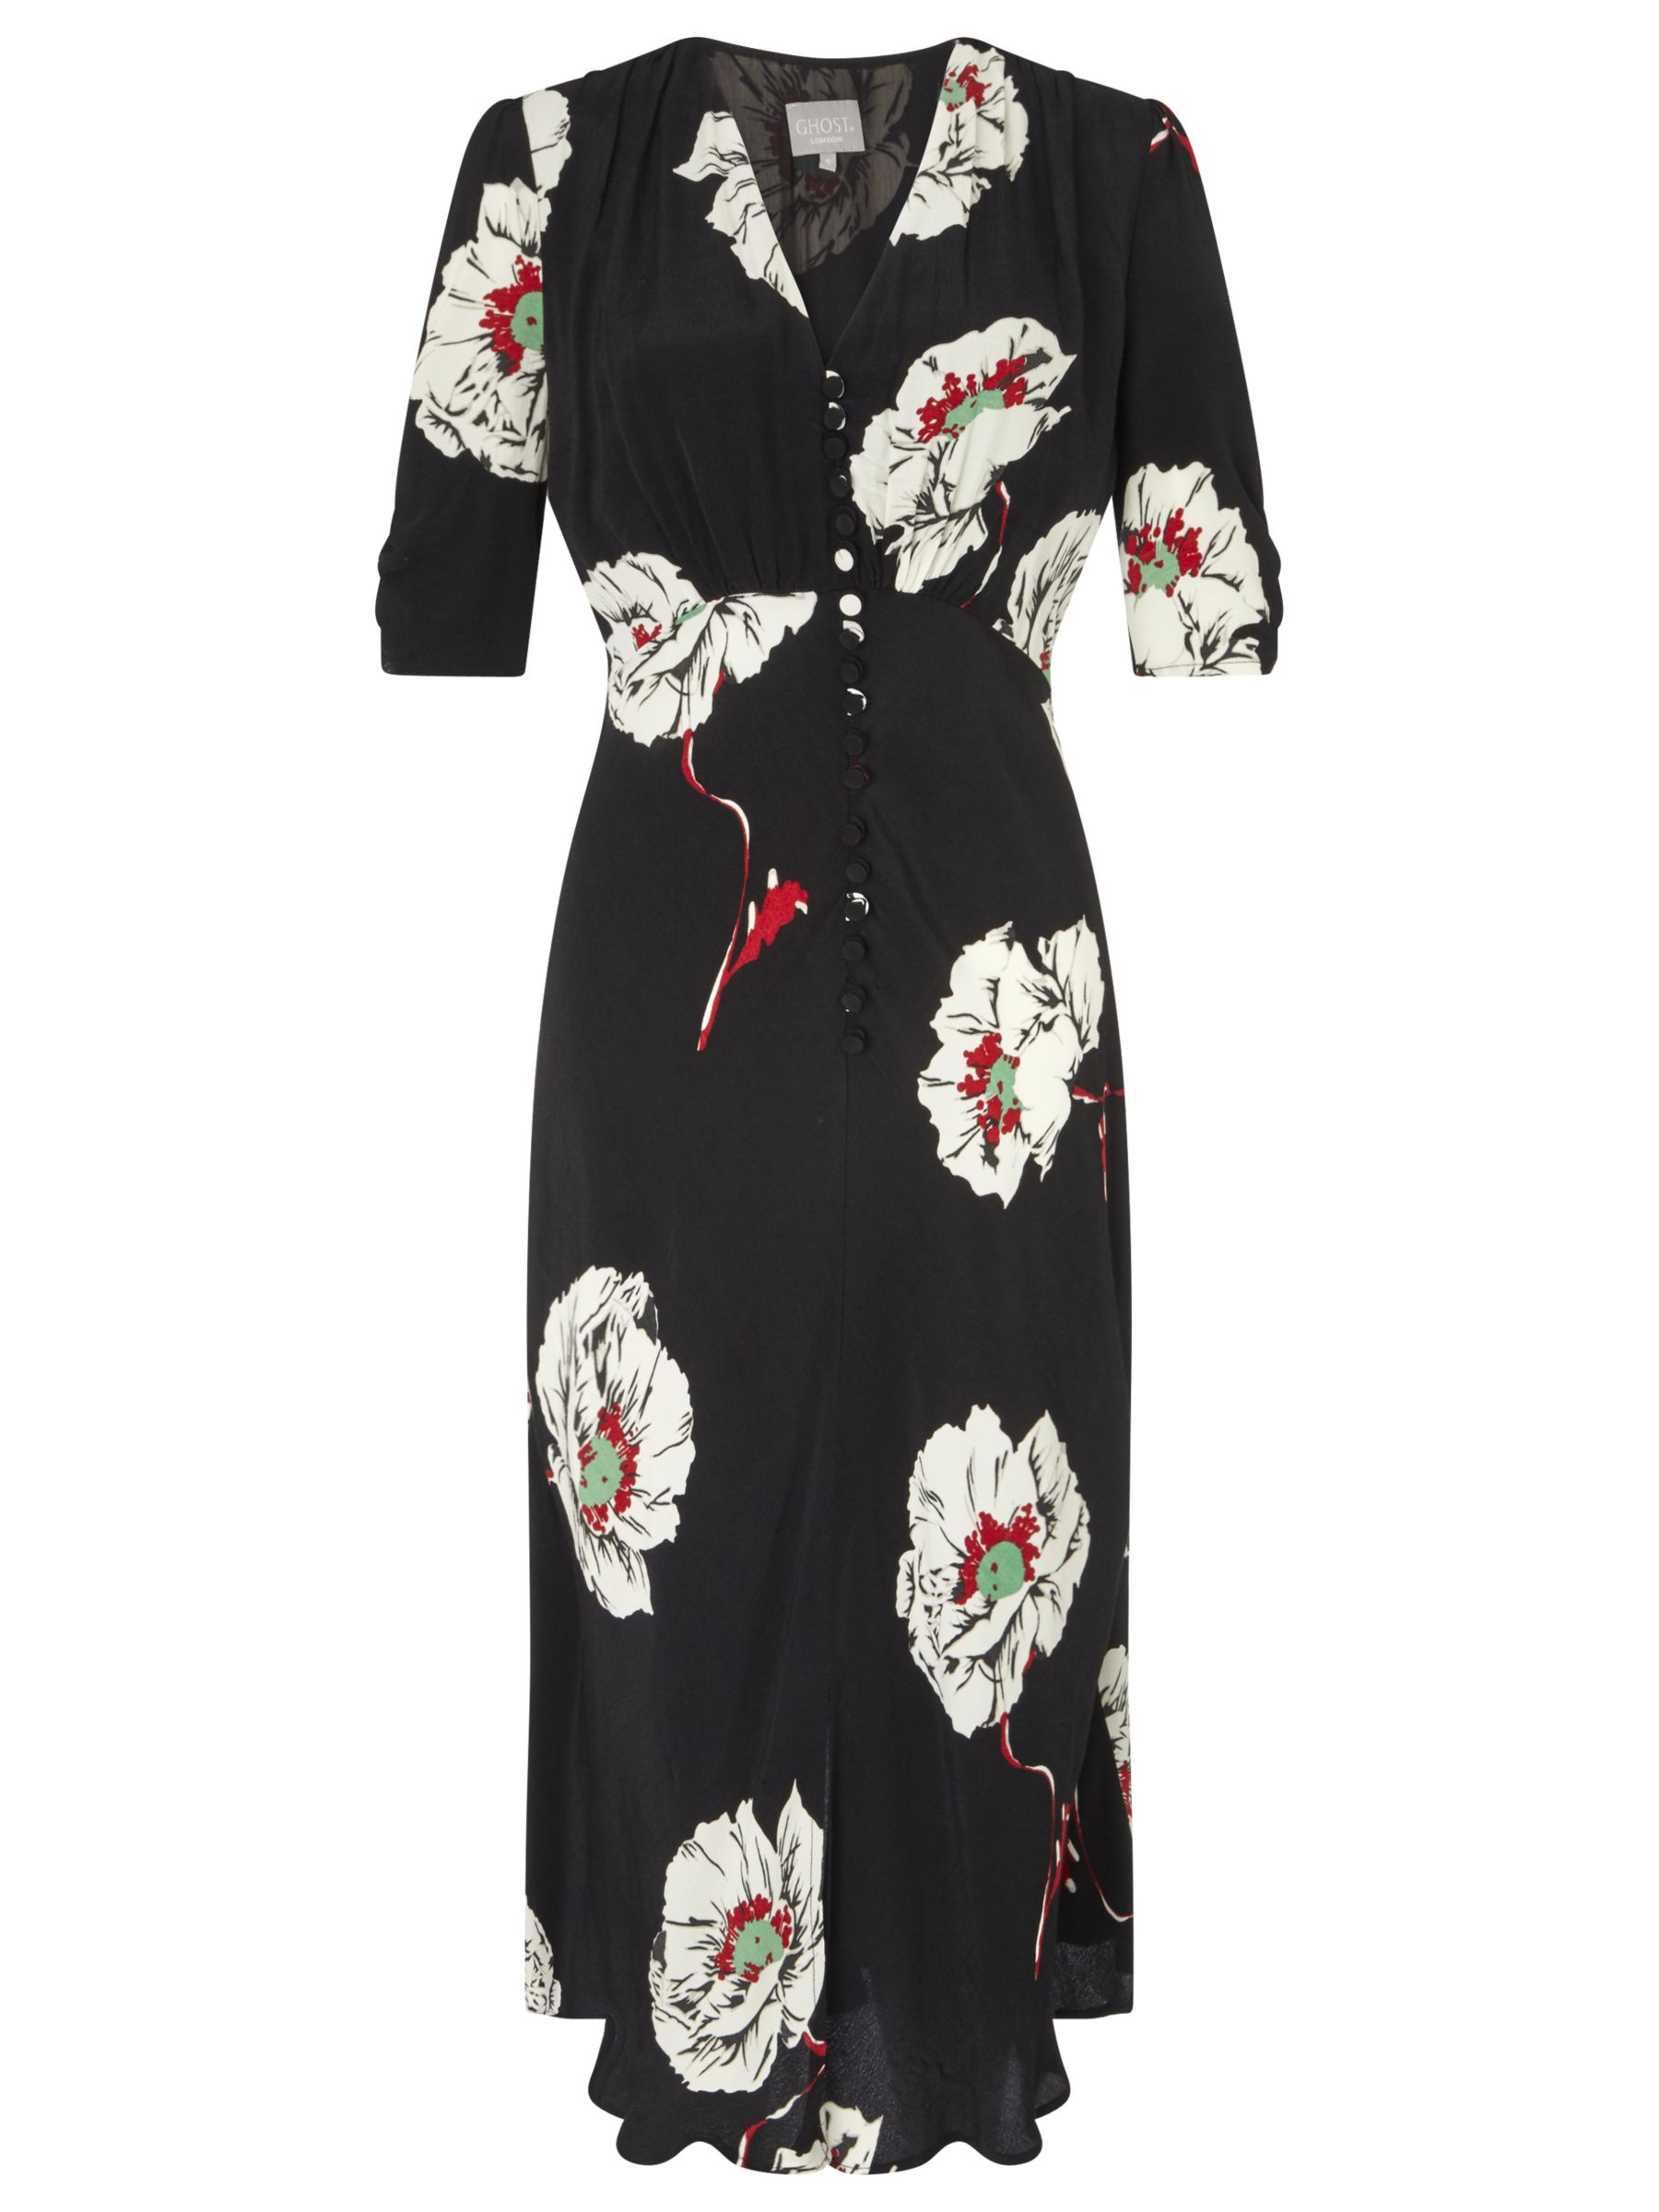 ghost sabrina floral print dress black/multi, ghost, sabrina, floral, print, dress, black/multi, xs|m|l|s, women, womens dresses, 1879299